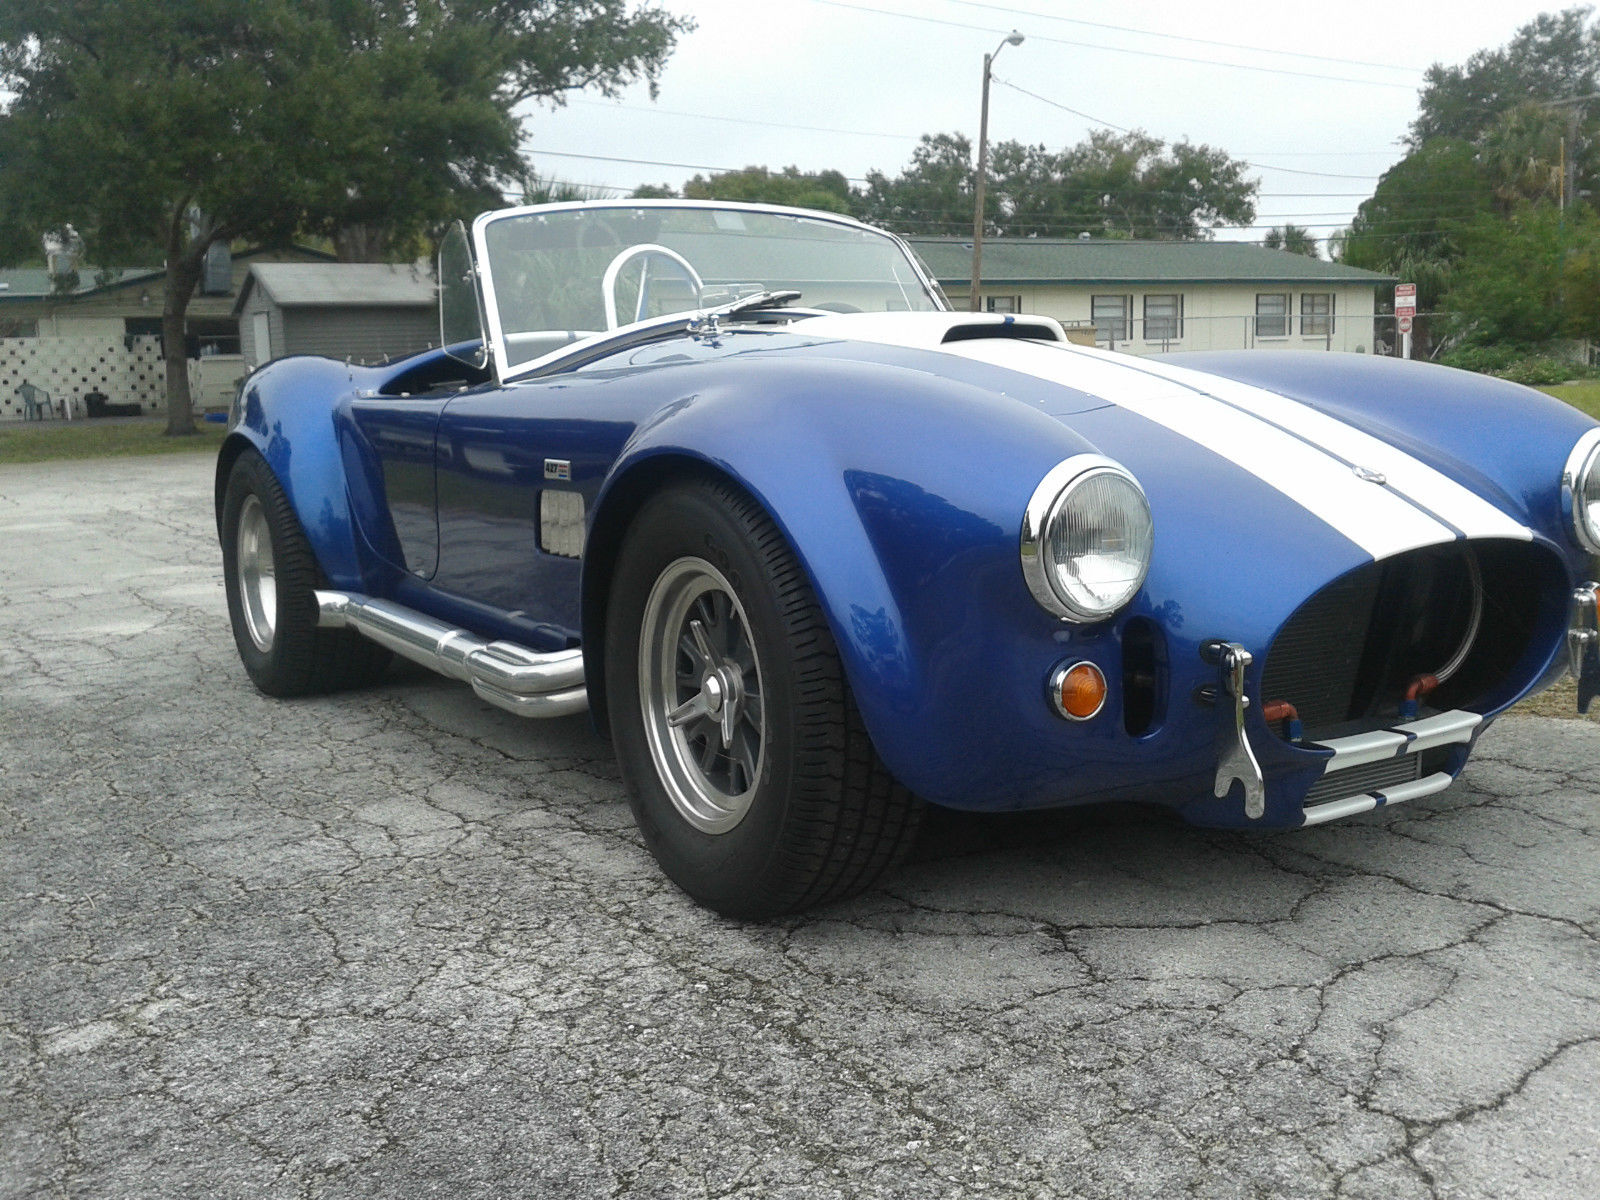 1965 shelby ac cobra 427 sc signed by carroll shelby for sale in saint petersburg florida. Black Bedroom Furniture Sets. Home Design Ideas